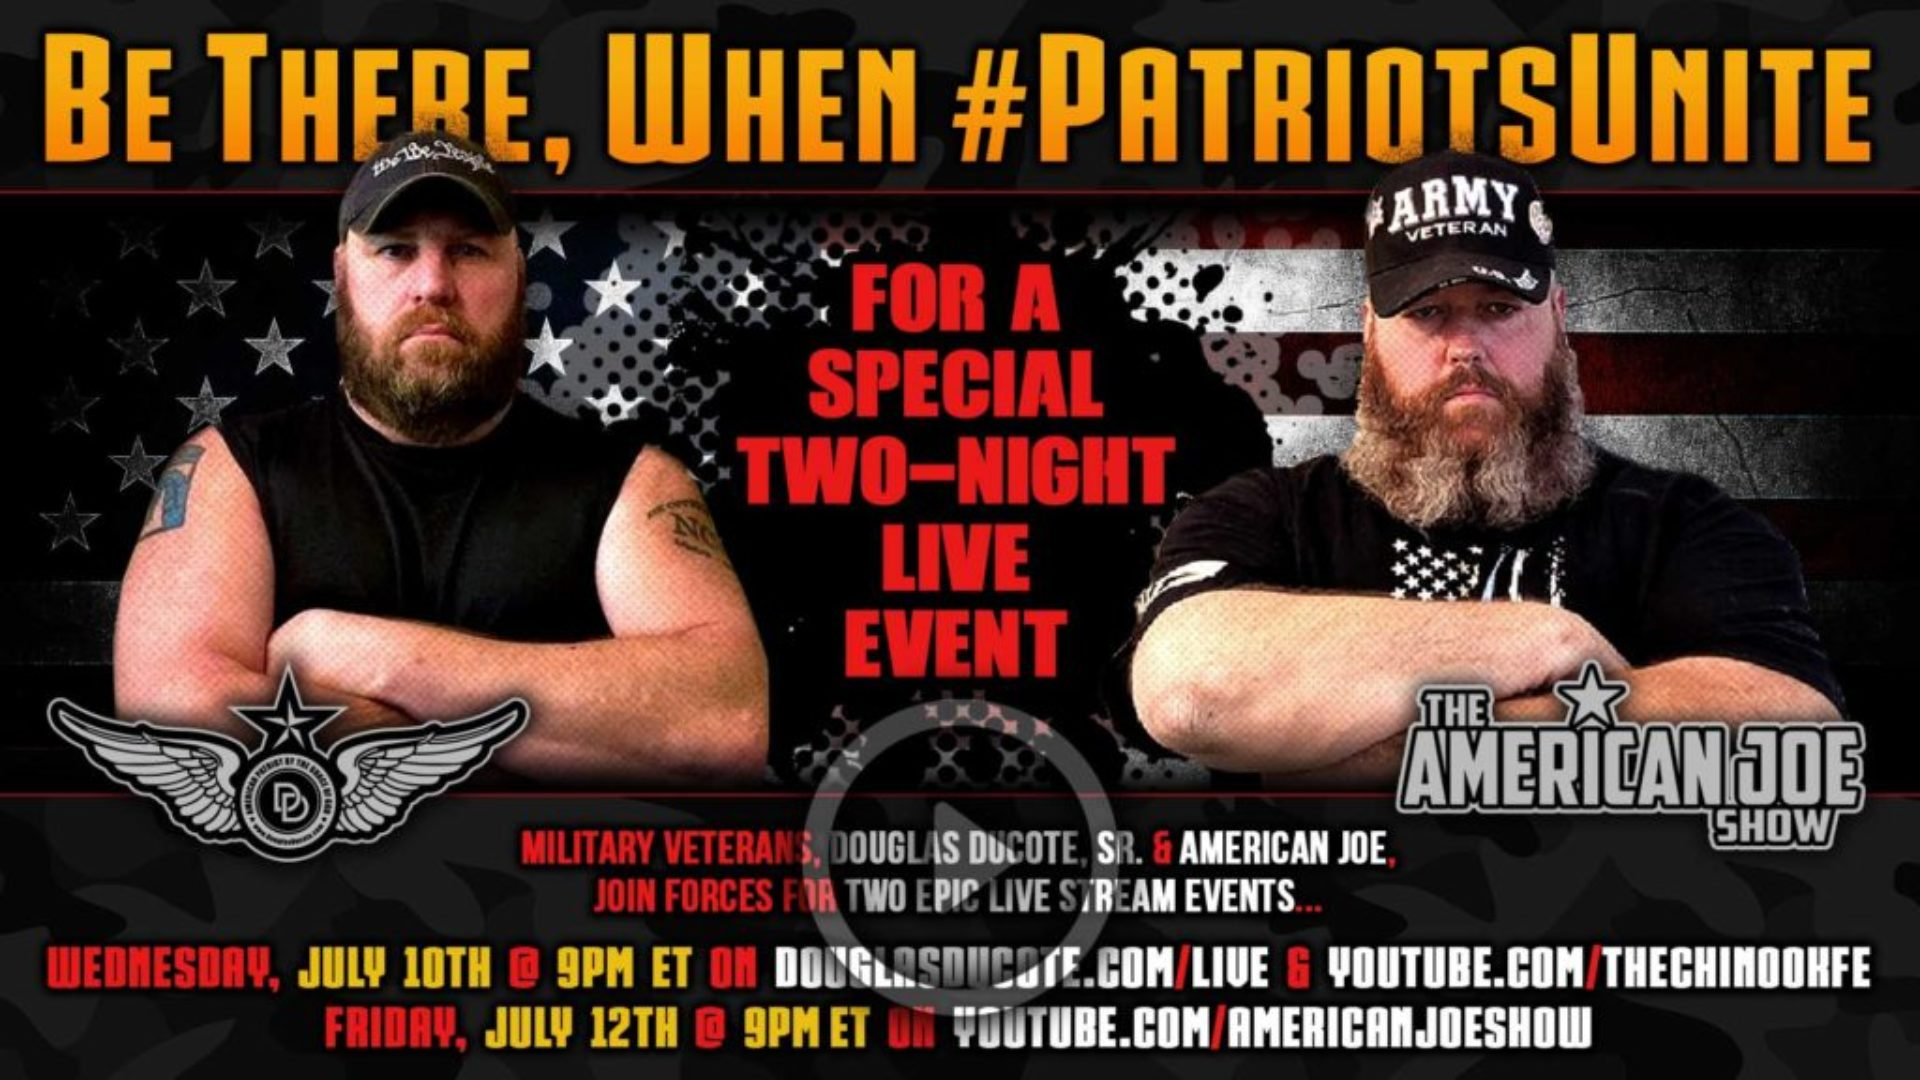 Patriots-Unite-Epic-Event-Live-With-Douglas-Ducote-And-American-Joe-2